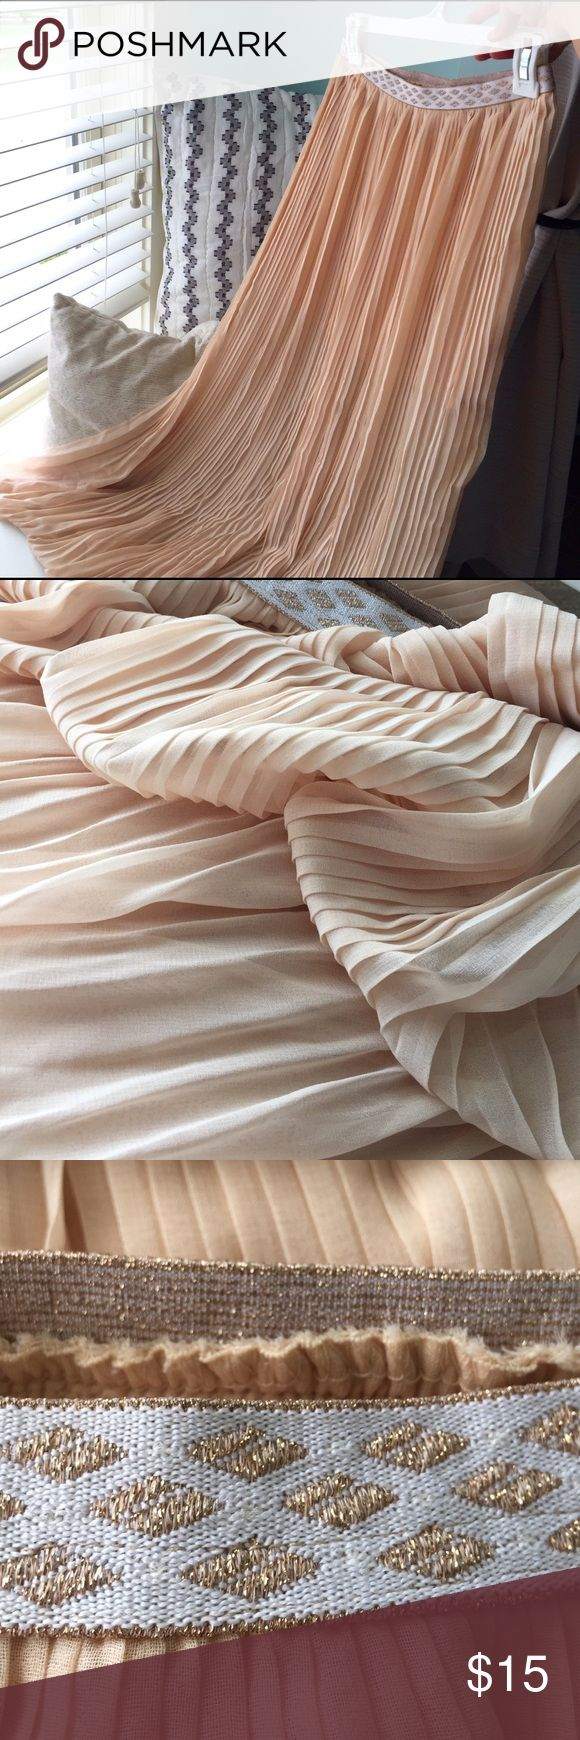 Tan maxi skirt Very interesting fabric! Light/medium tan color maxi skirt made of see-through material, with short slip underneath. Has stretchy waistband with sparkling rose gold diamond-shaped embroidery Love Riche Skirts Maxi